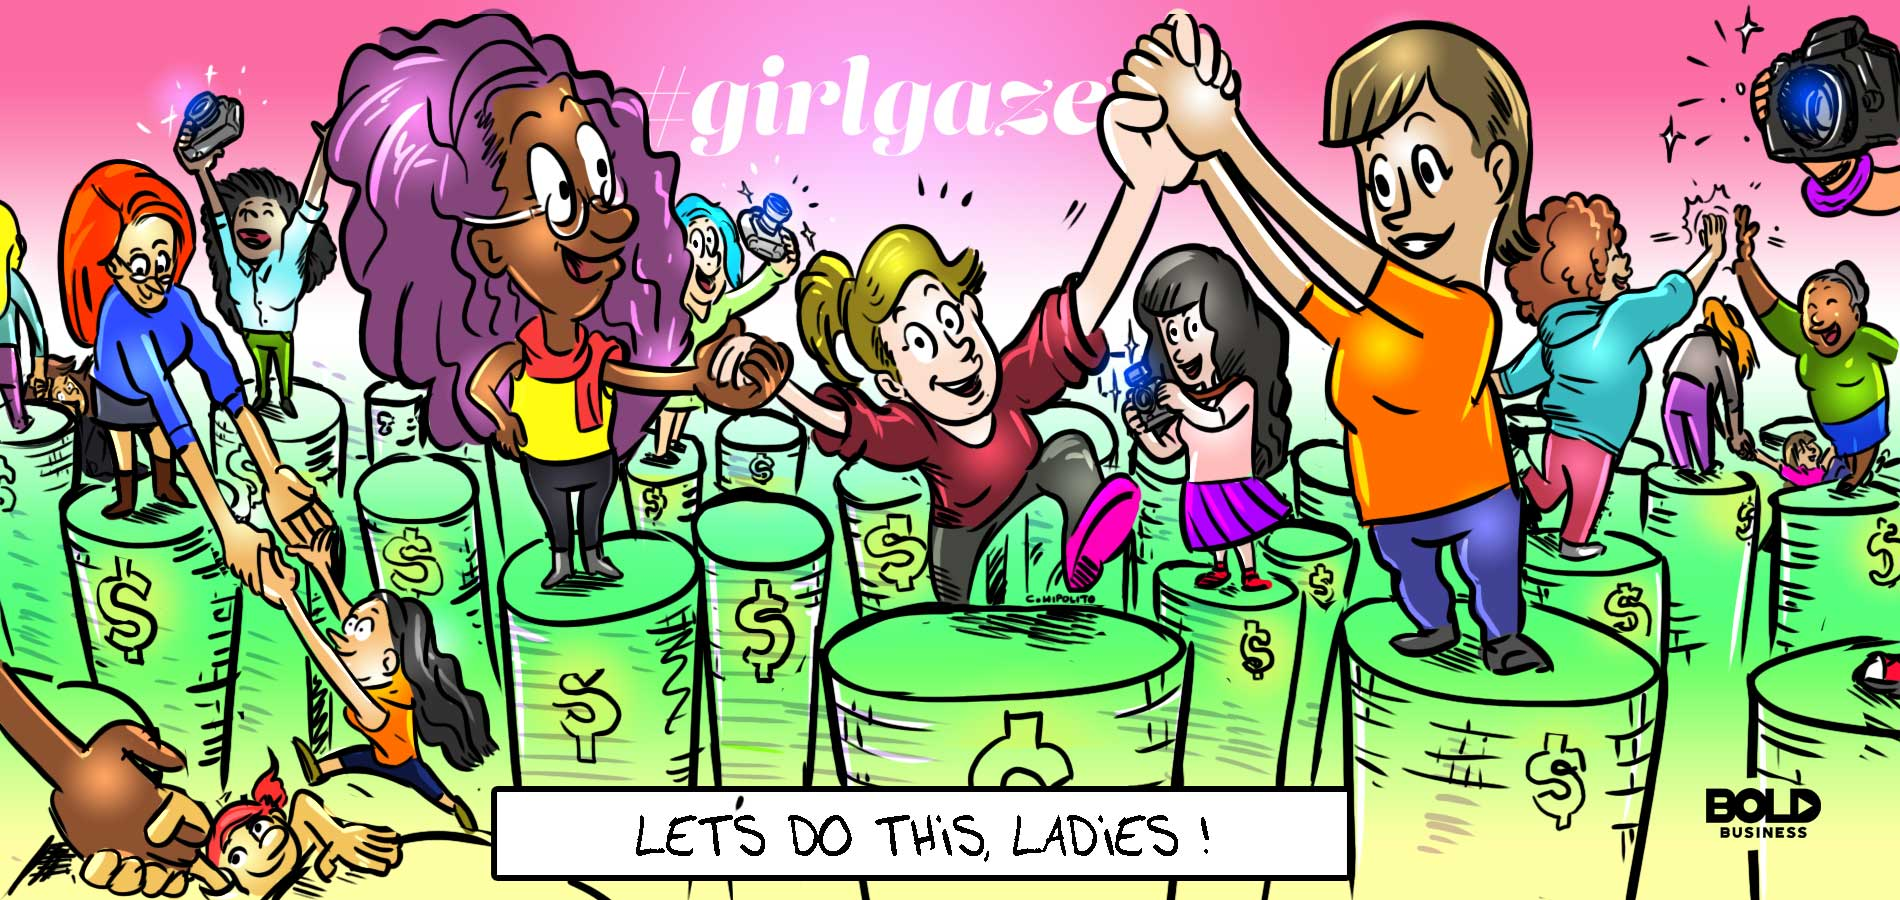 cartoon of female photographers helping each other up on pedestals as Girlgaze takes steps towards reducing gender disparity